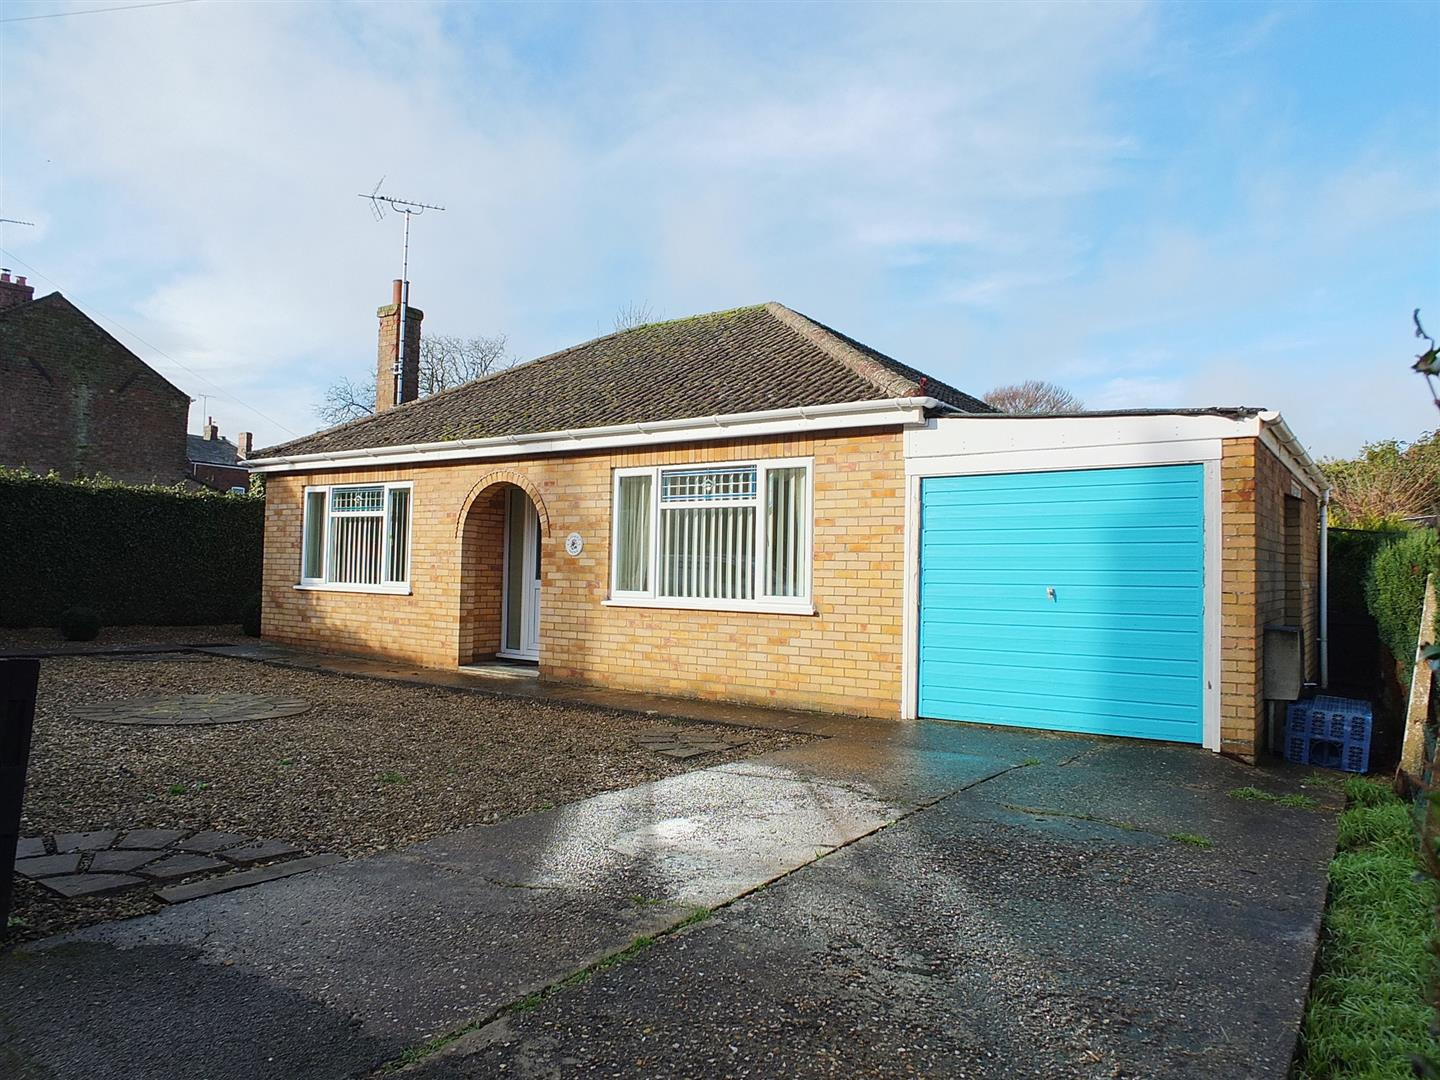 2 bed detached bungalow for sale in Long Sutton Spalding, PE12 9DH, PE12